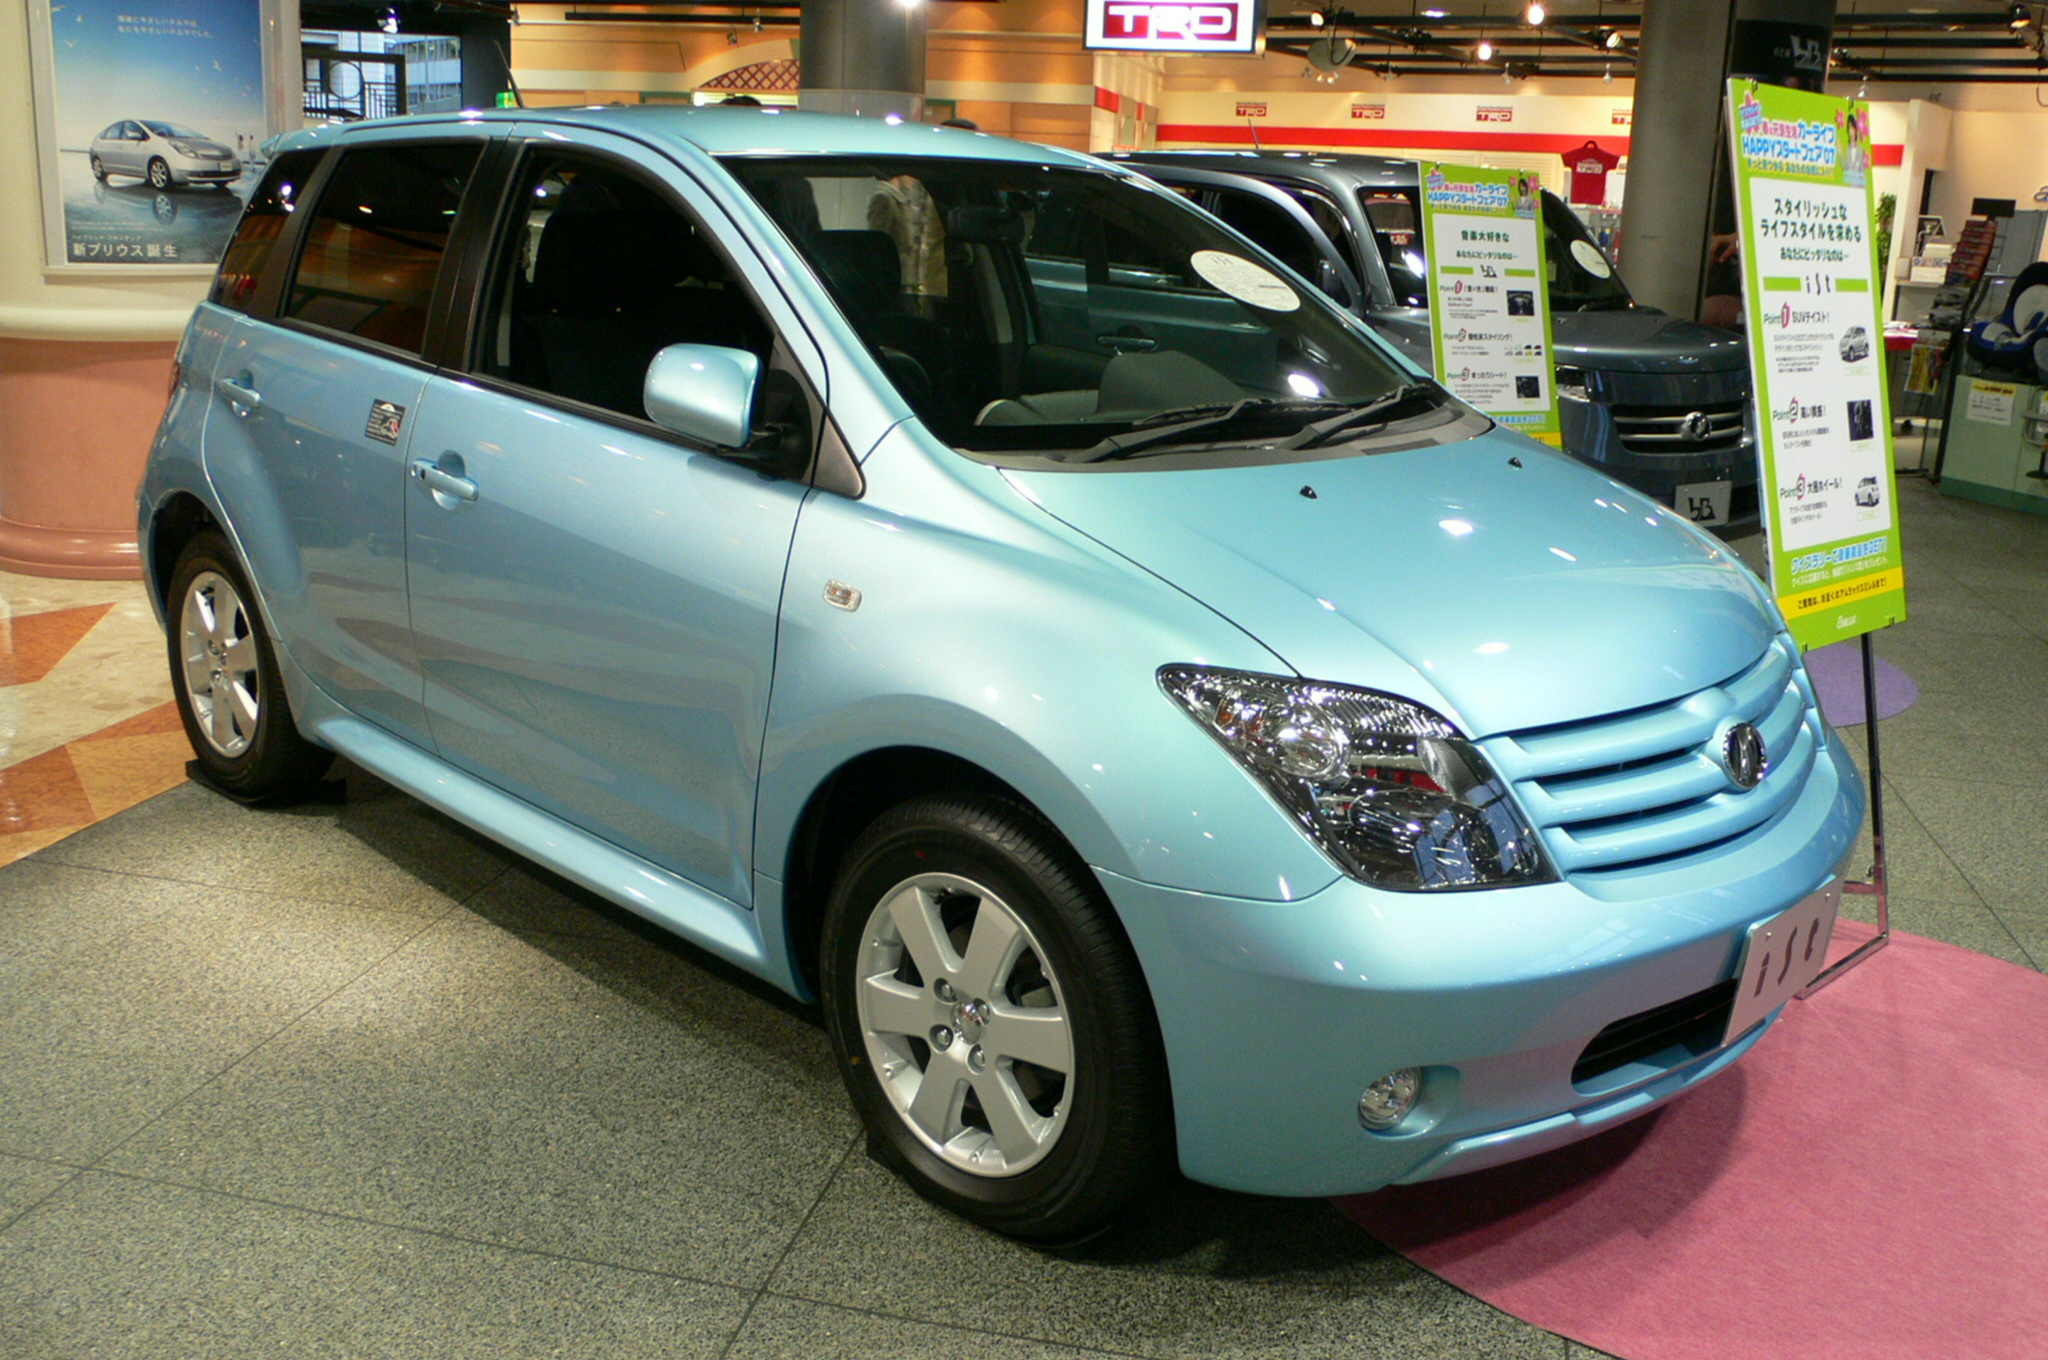 Toyota Ist 2014 Photo - 1